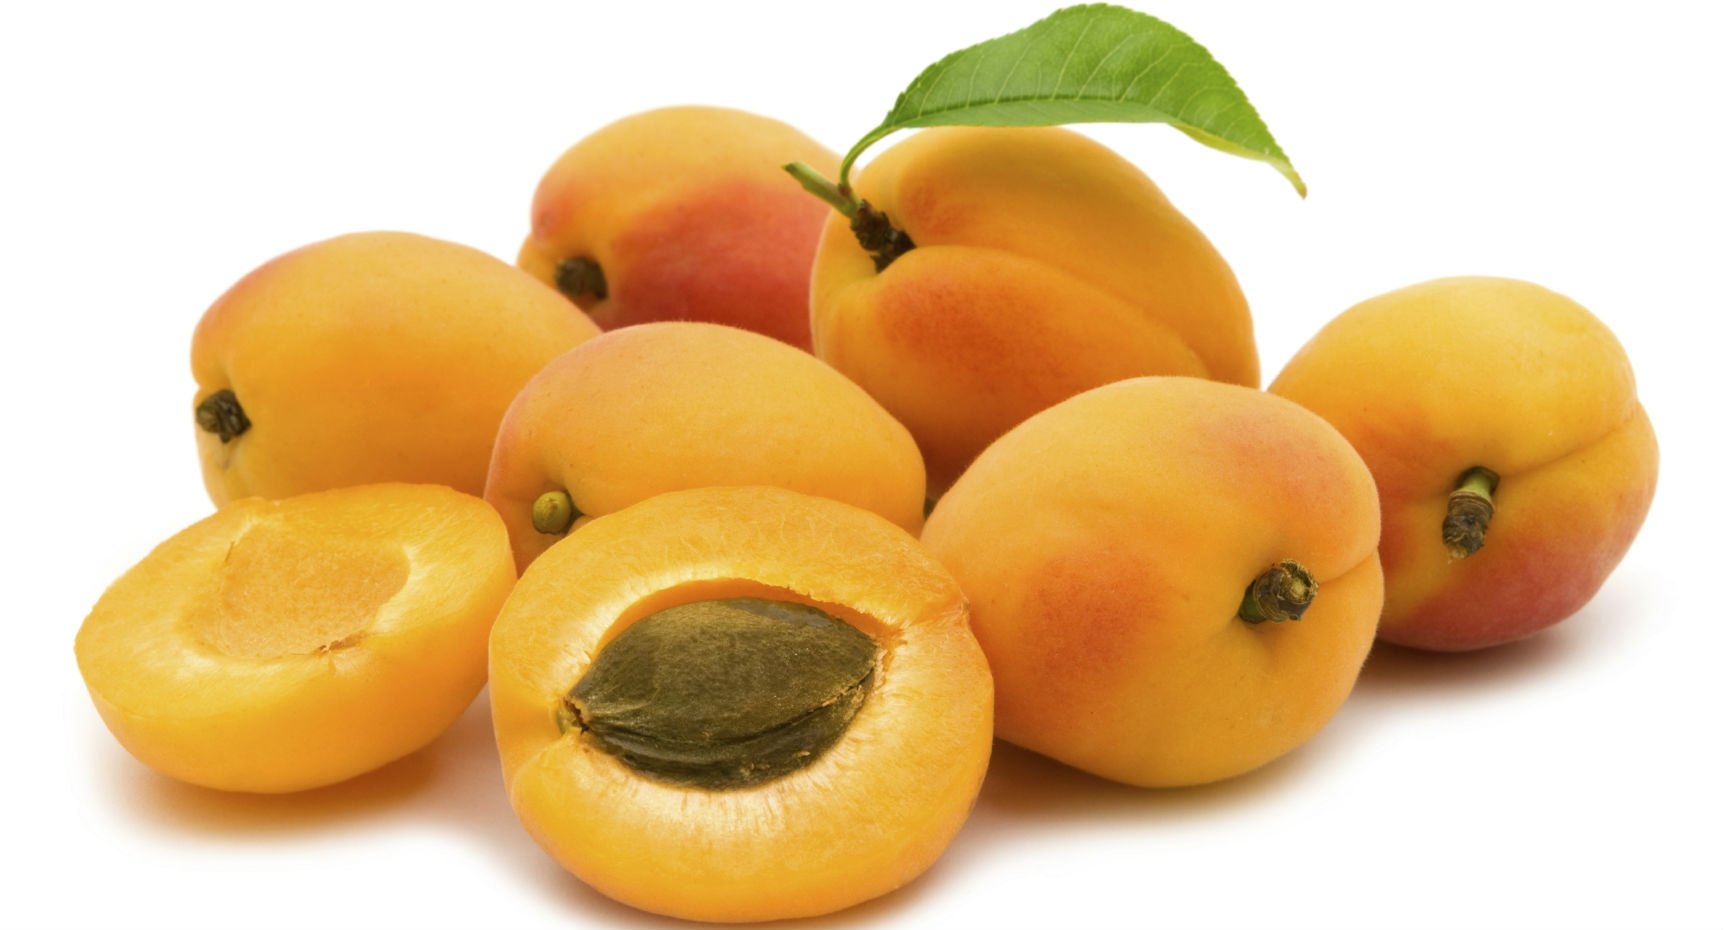 Apricot half fruit photos